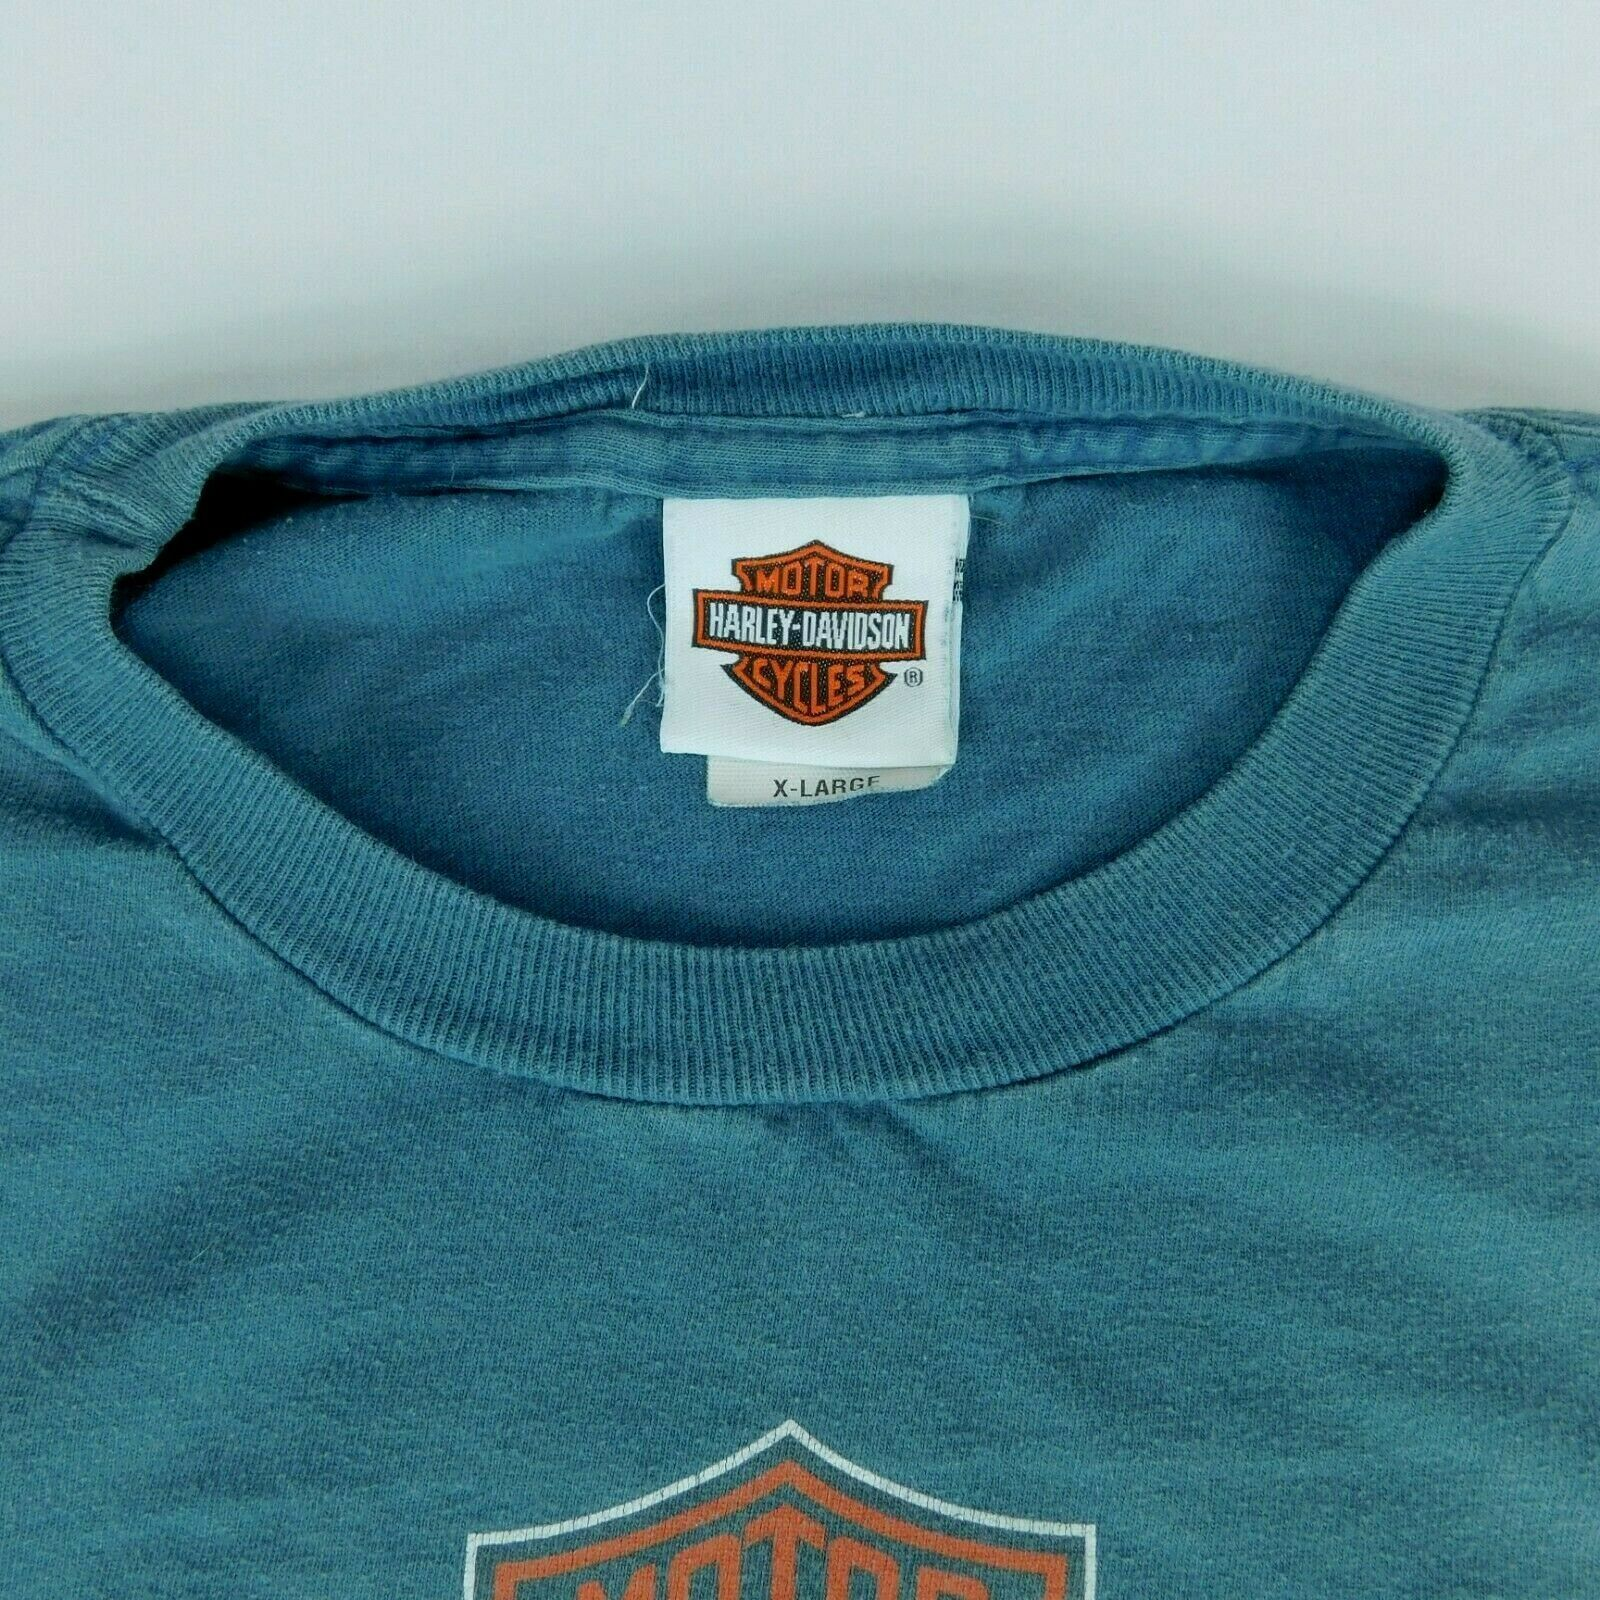 Harley Davidson Sturgis Black Hills Rally 2008 Buffalo Chip Blue T Shirt Sz XL image 7